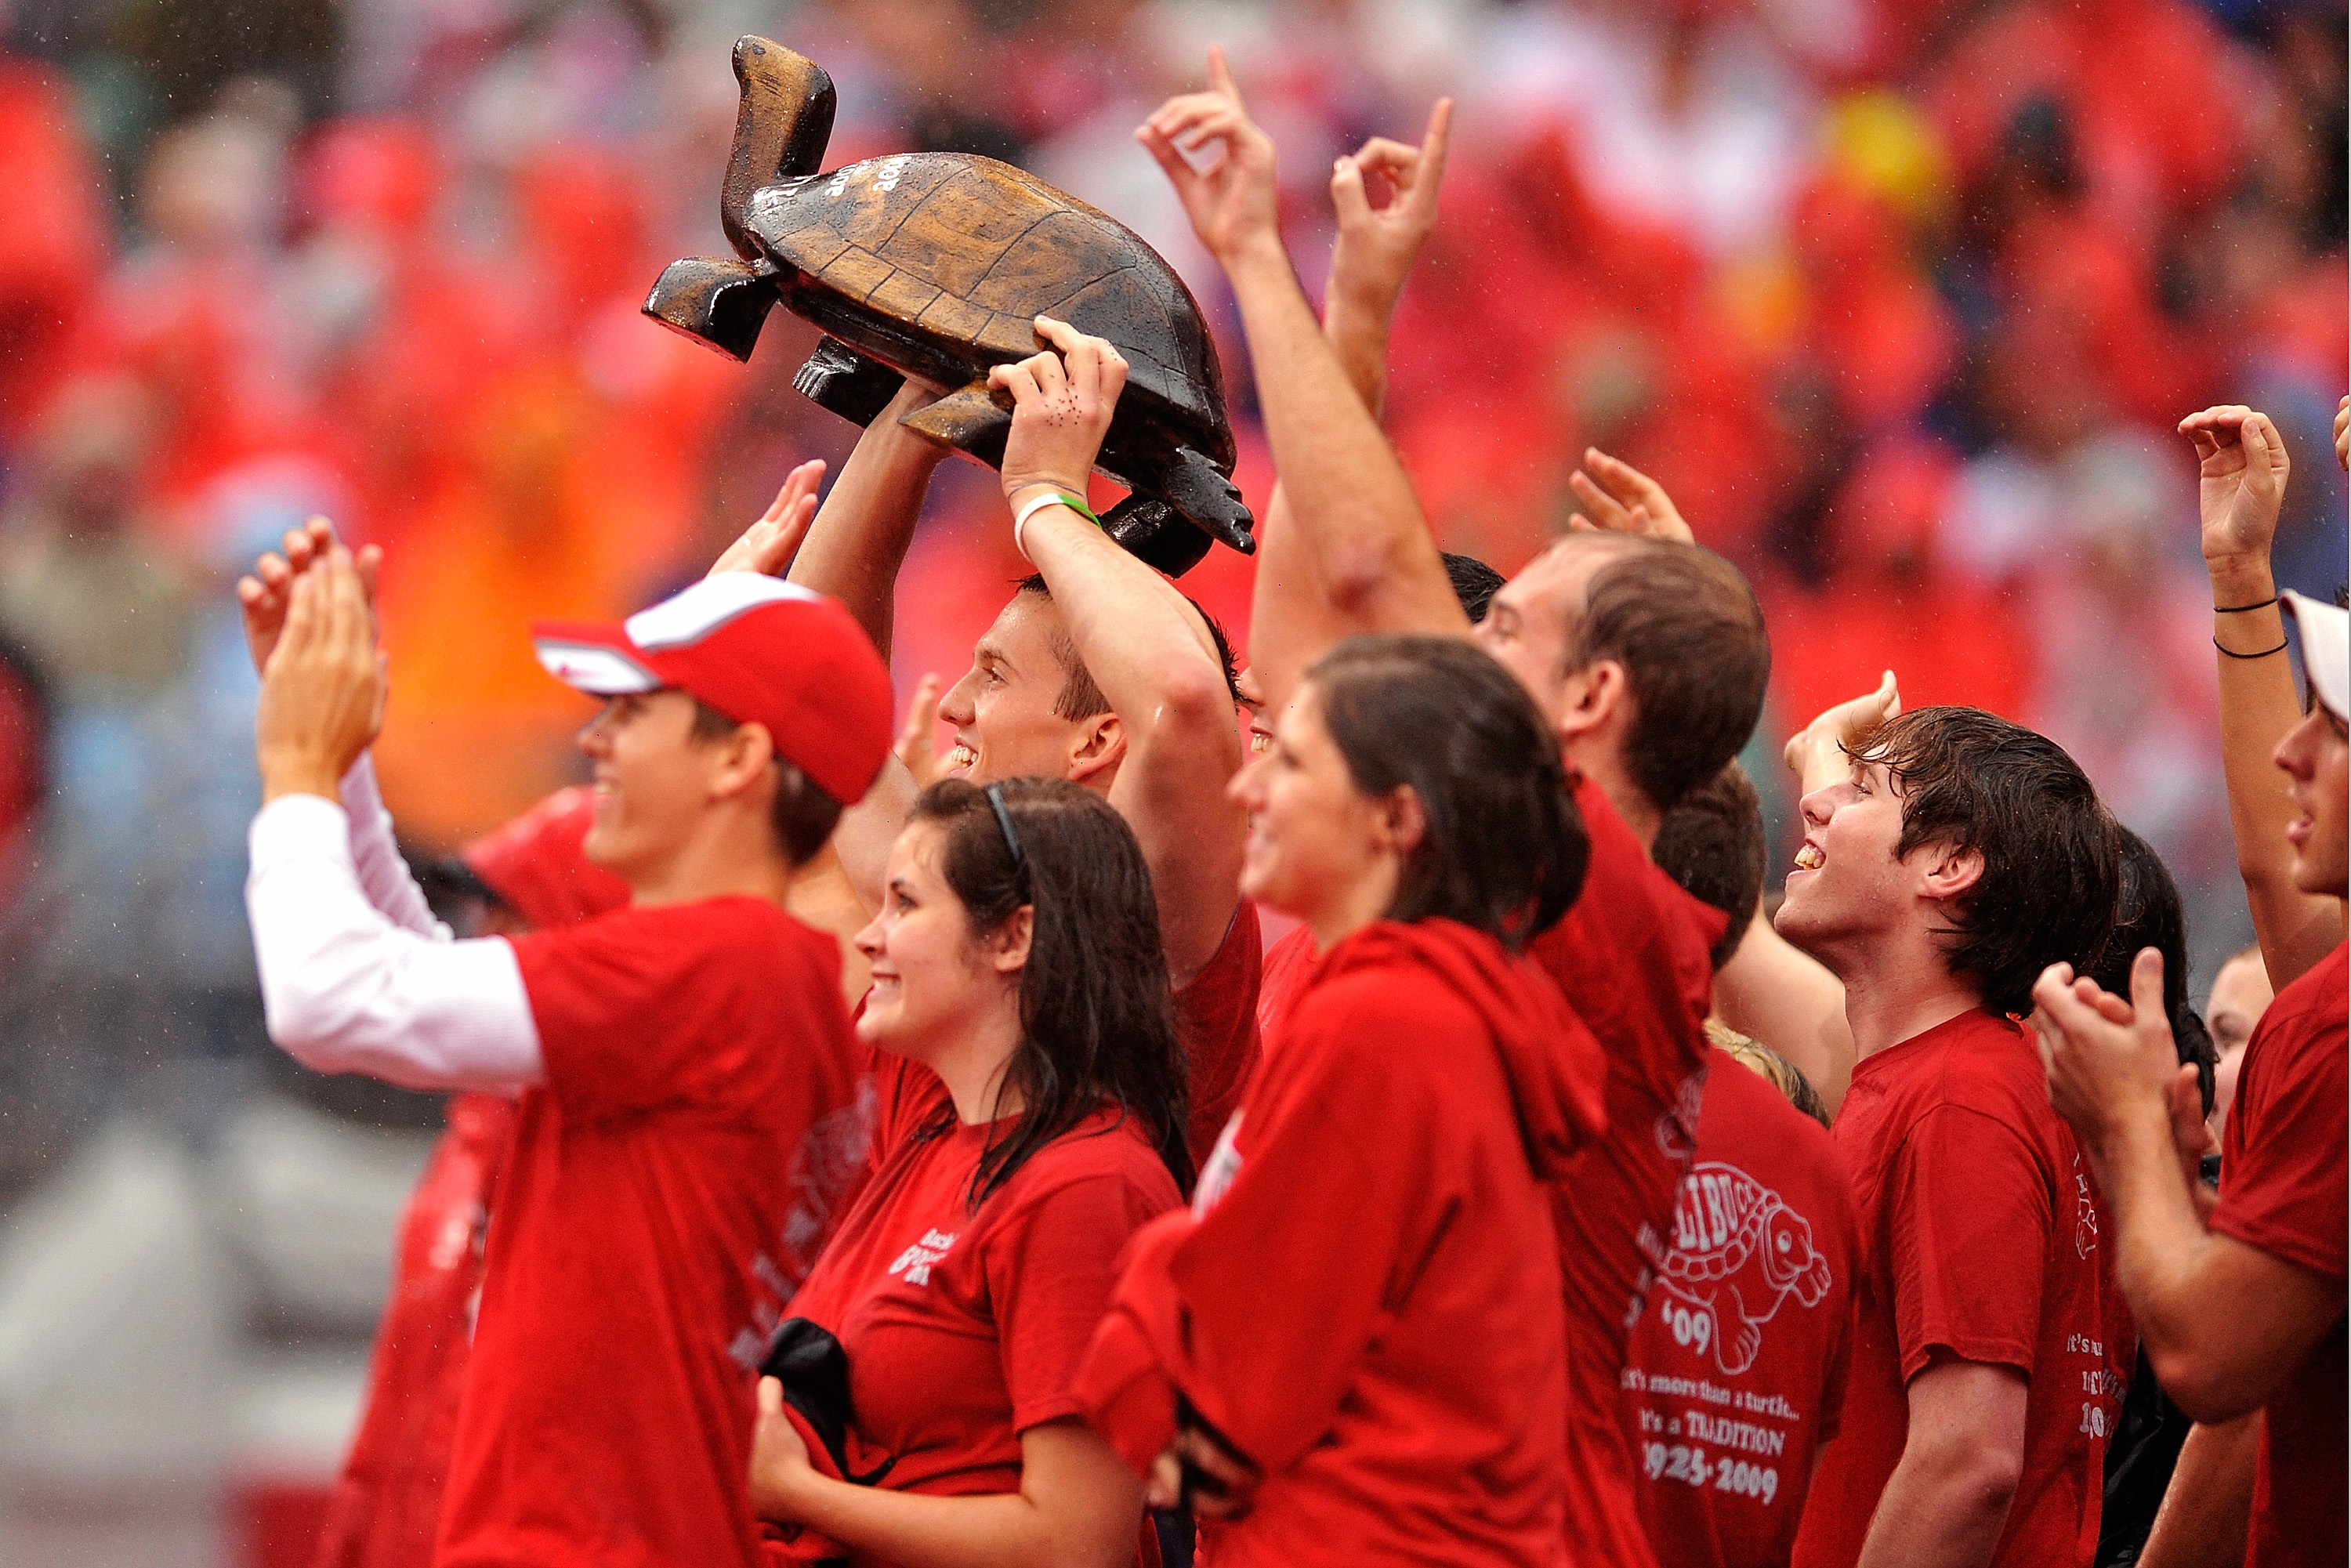 COLUMBUS, OH - SEPTEMBER 26:  Ohio State Buckeyes students hoist the Illibuck trophy during the game against the Illinois Fighting Illinois at Ohio Stadium on September 26, 2009 in Columbus, Ohio. The winner of the game gets to keep the trophy on campus u